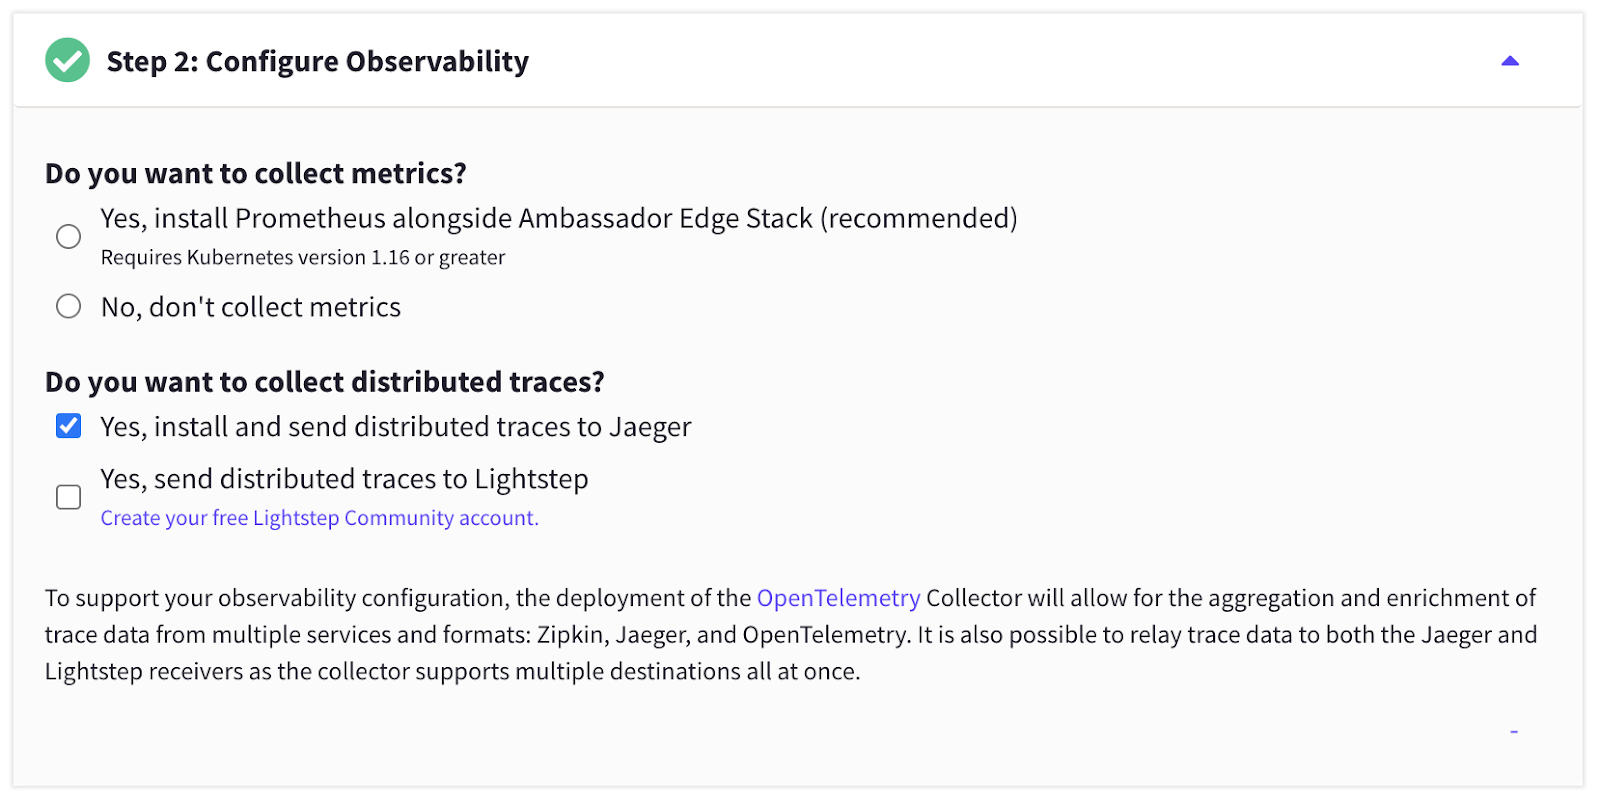 K8s Initializer observability options and Jaeger enabled